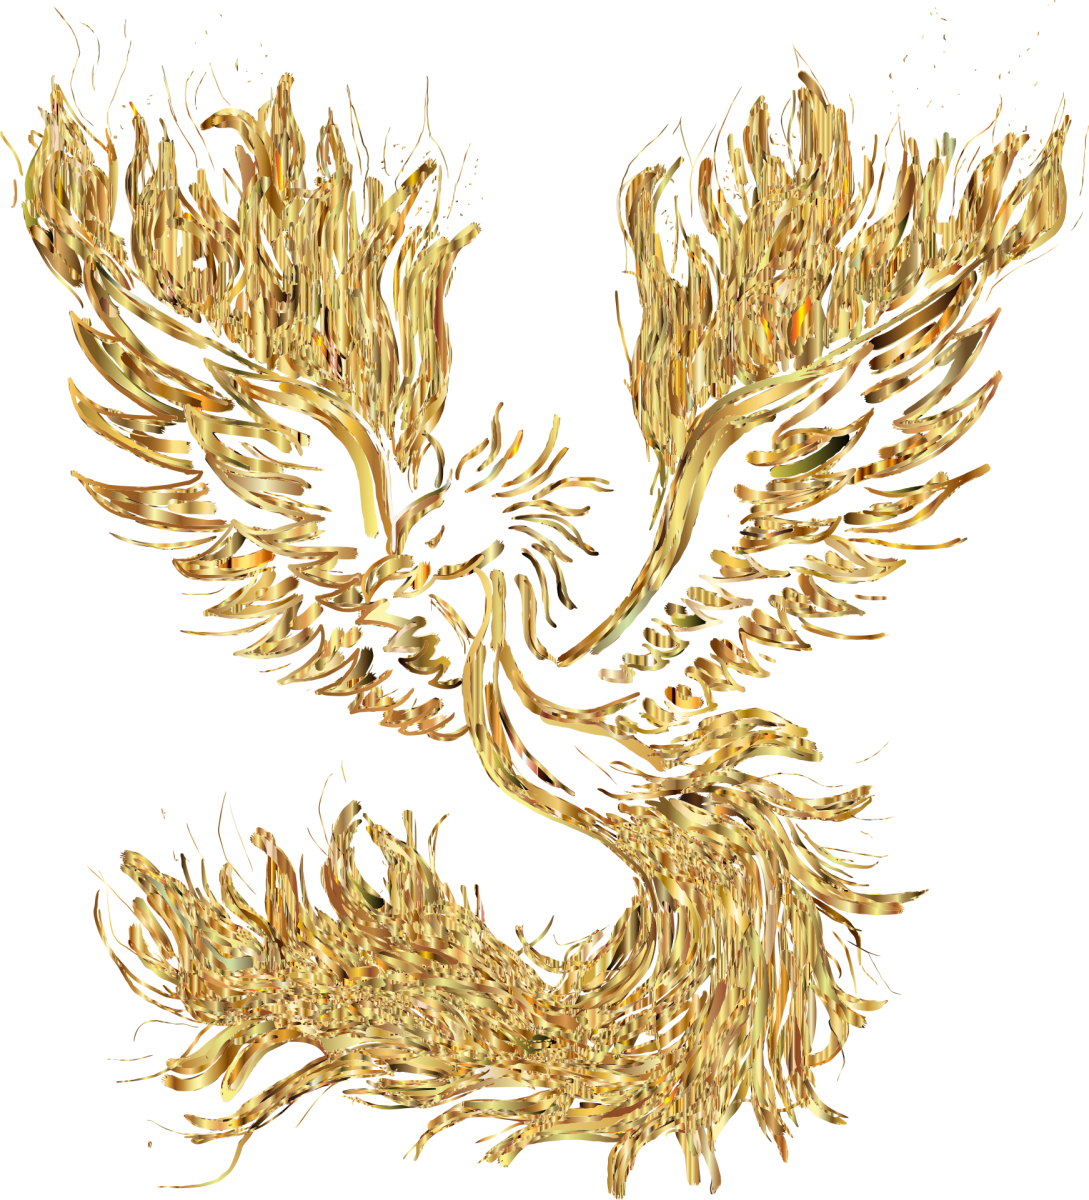 The phoenix is a mythical bird symbolising immortality, rebirth, and life after death